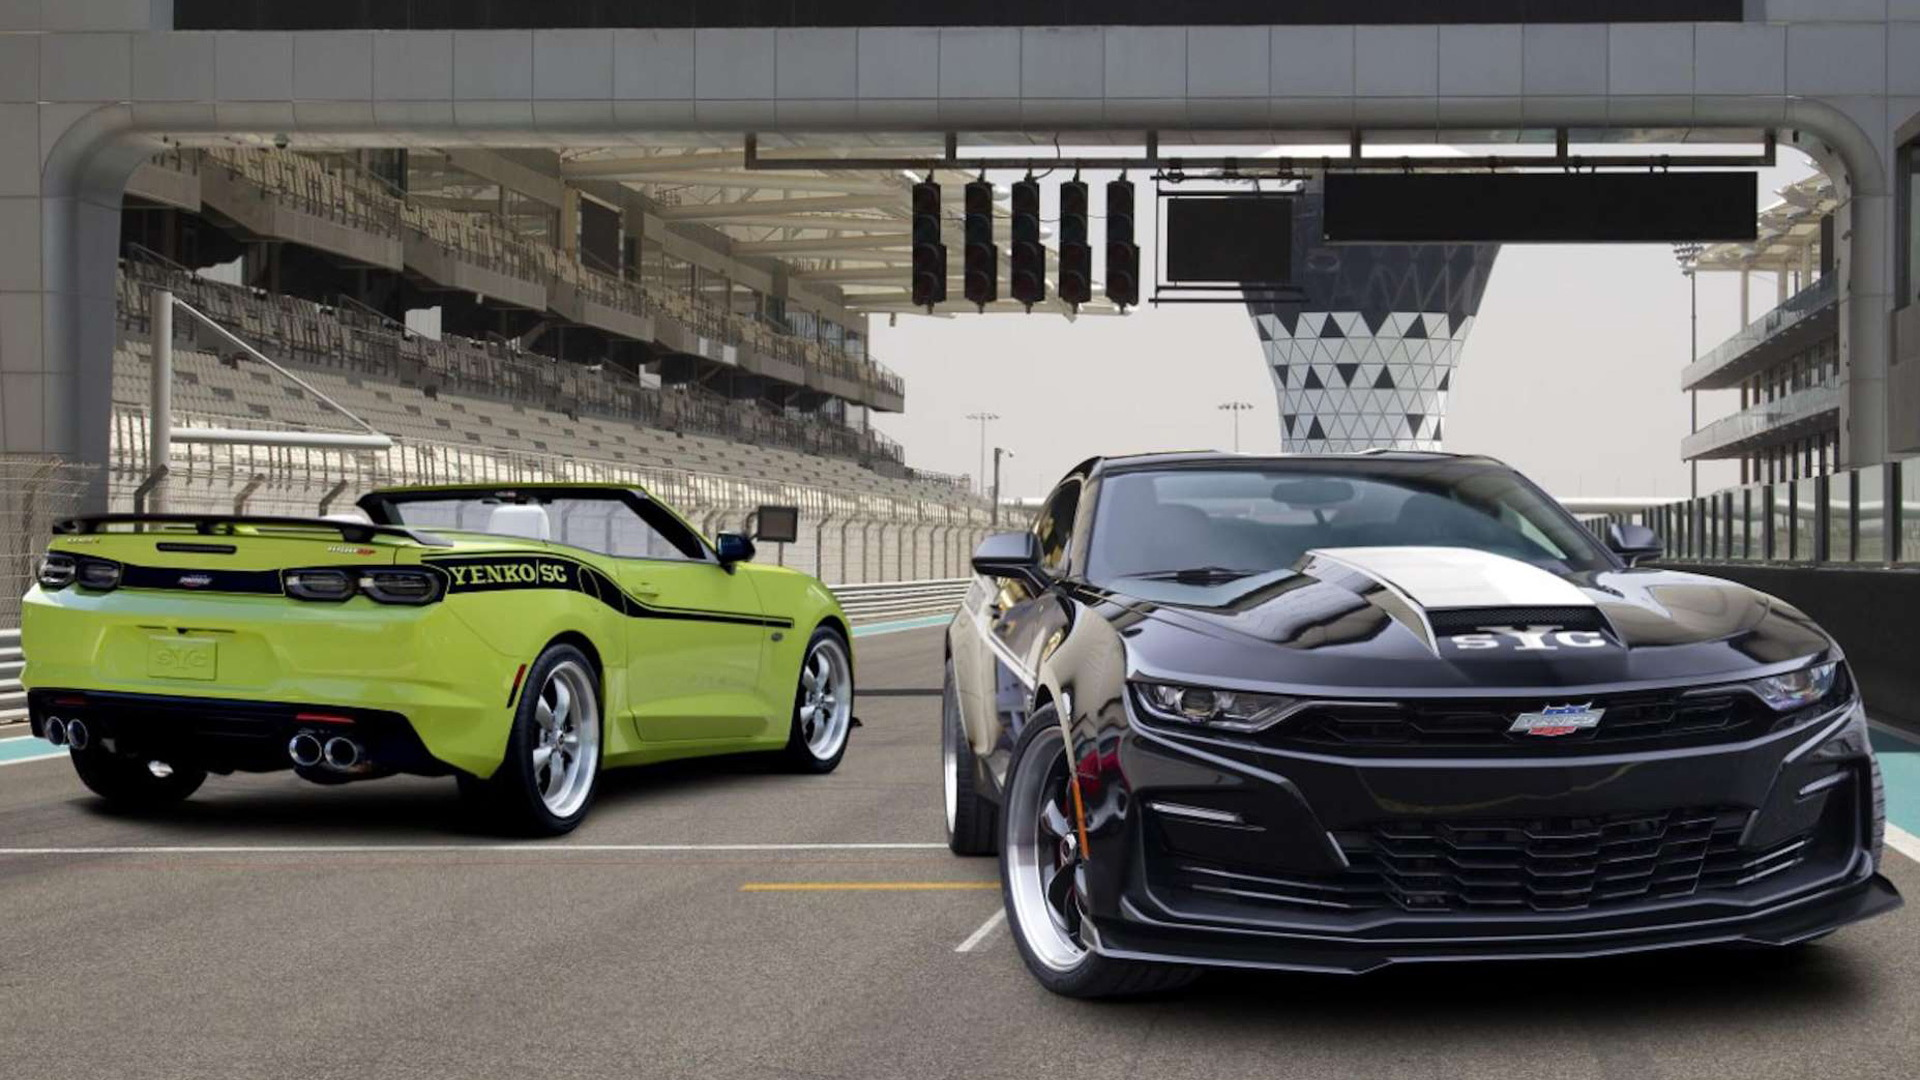 2020 Yenko/SC Stage I Camaro by Specialty Vehicle Engineering